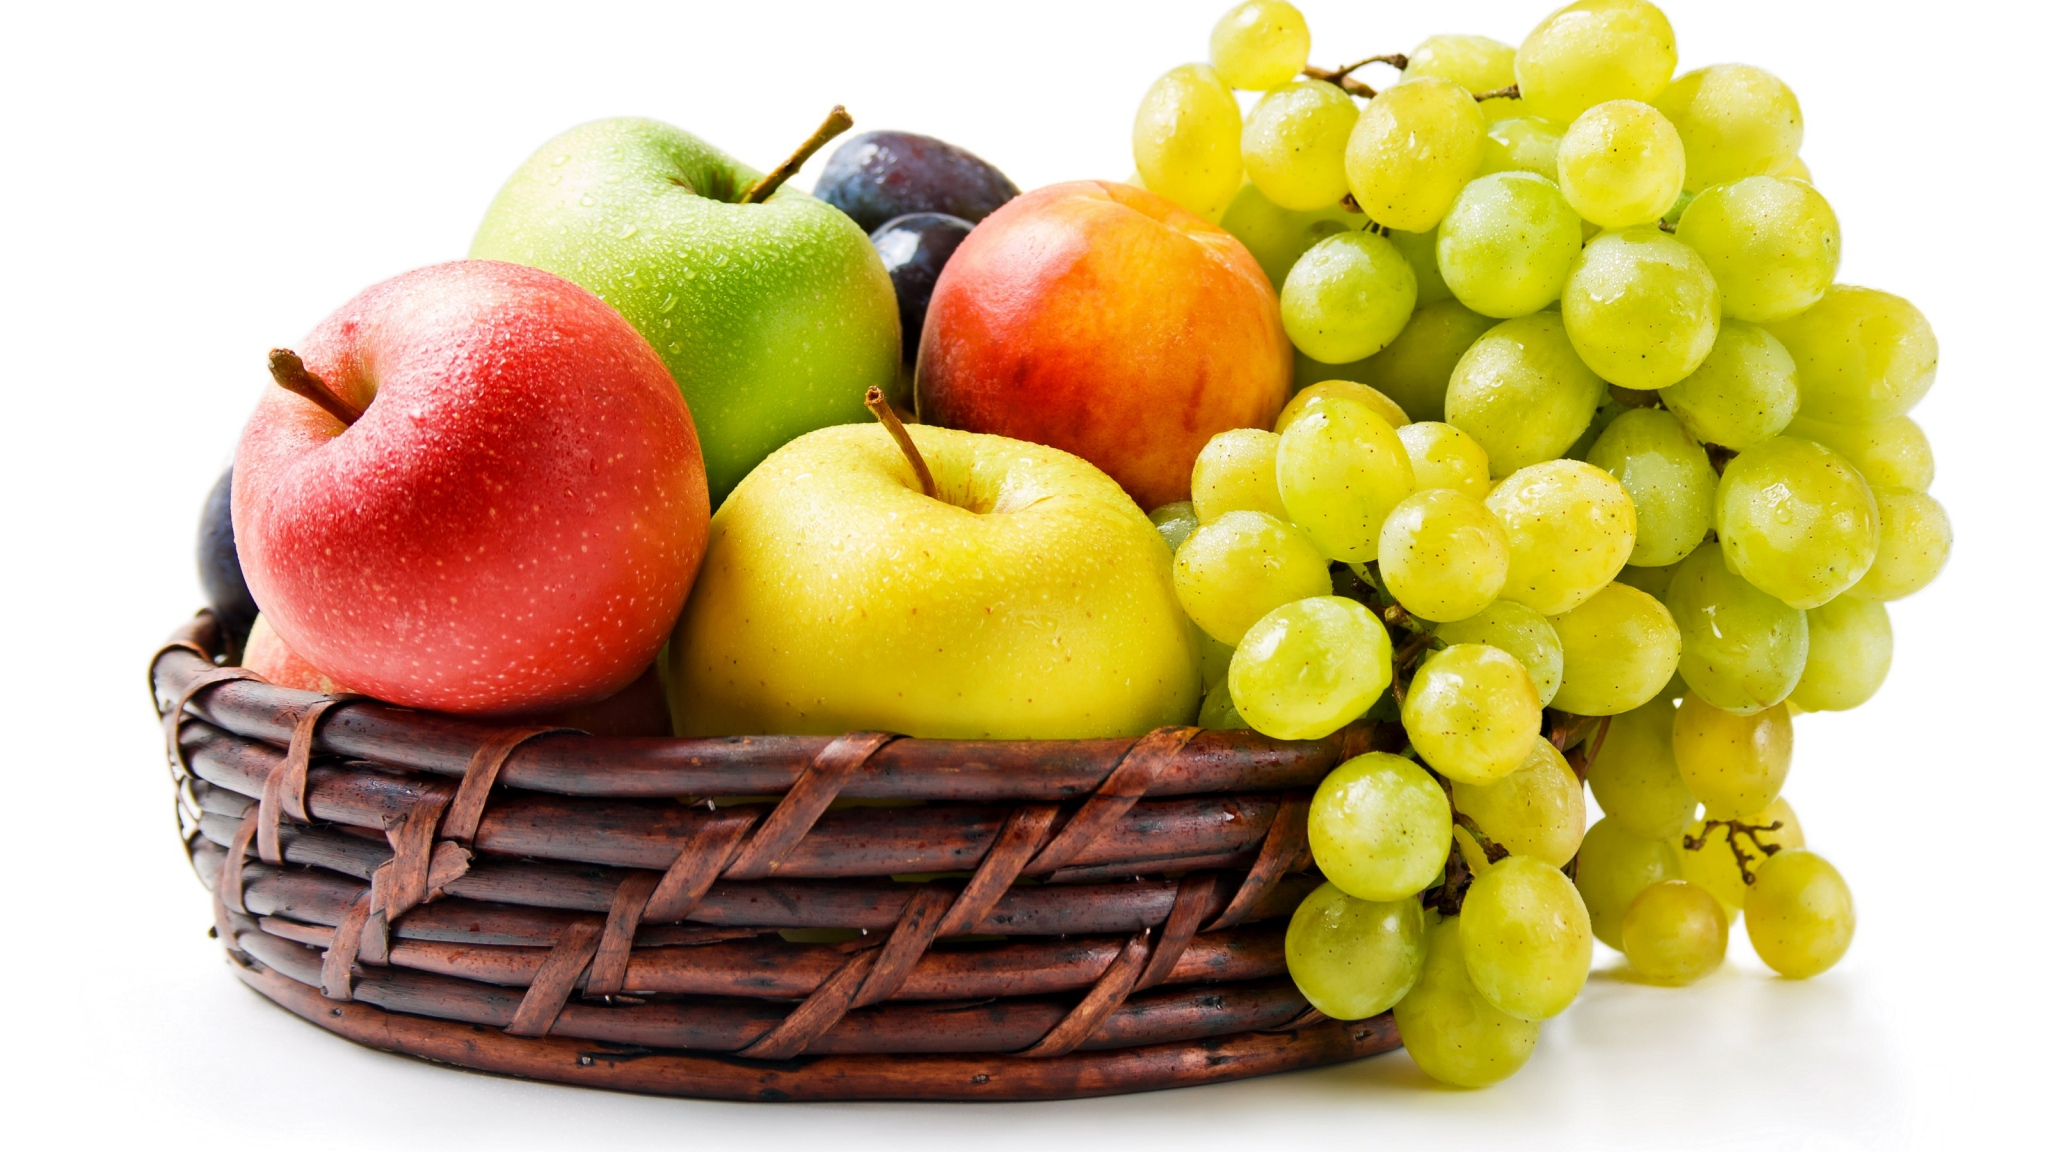 Grapes and apple